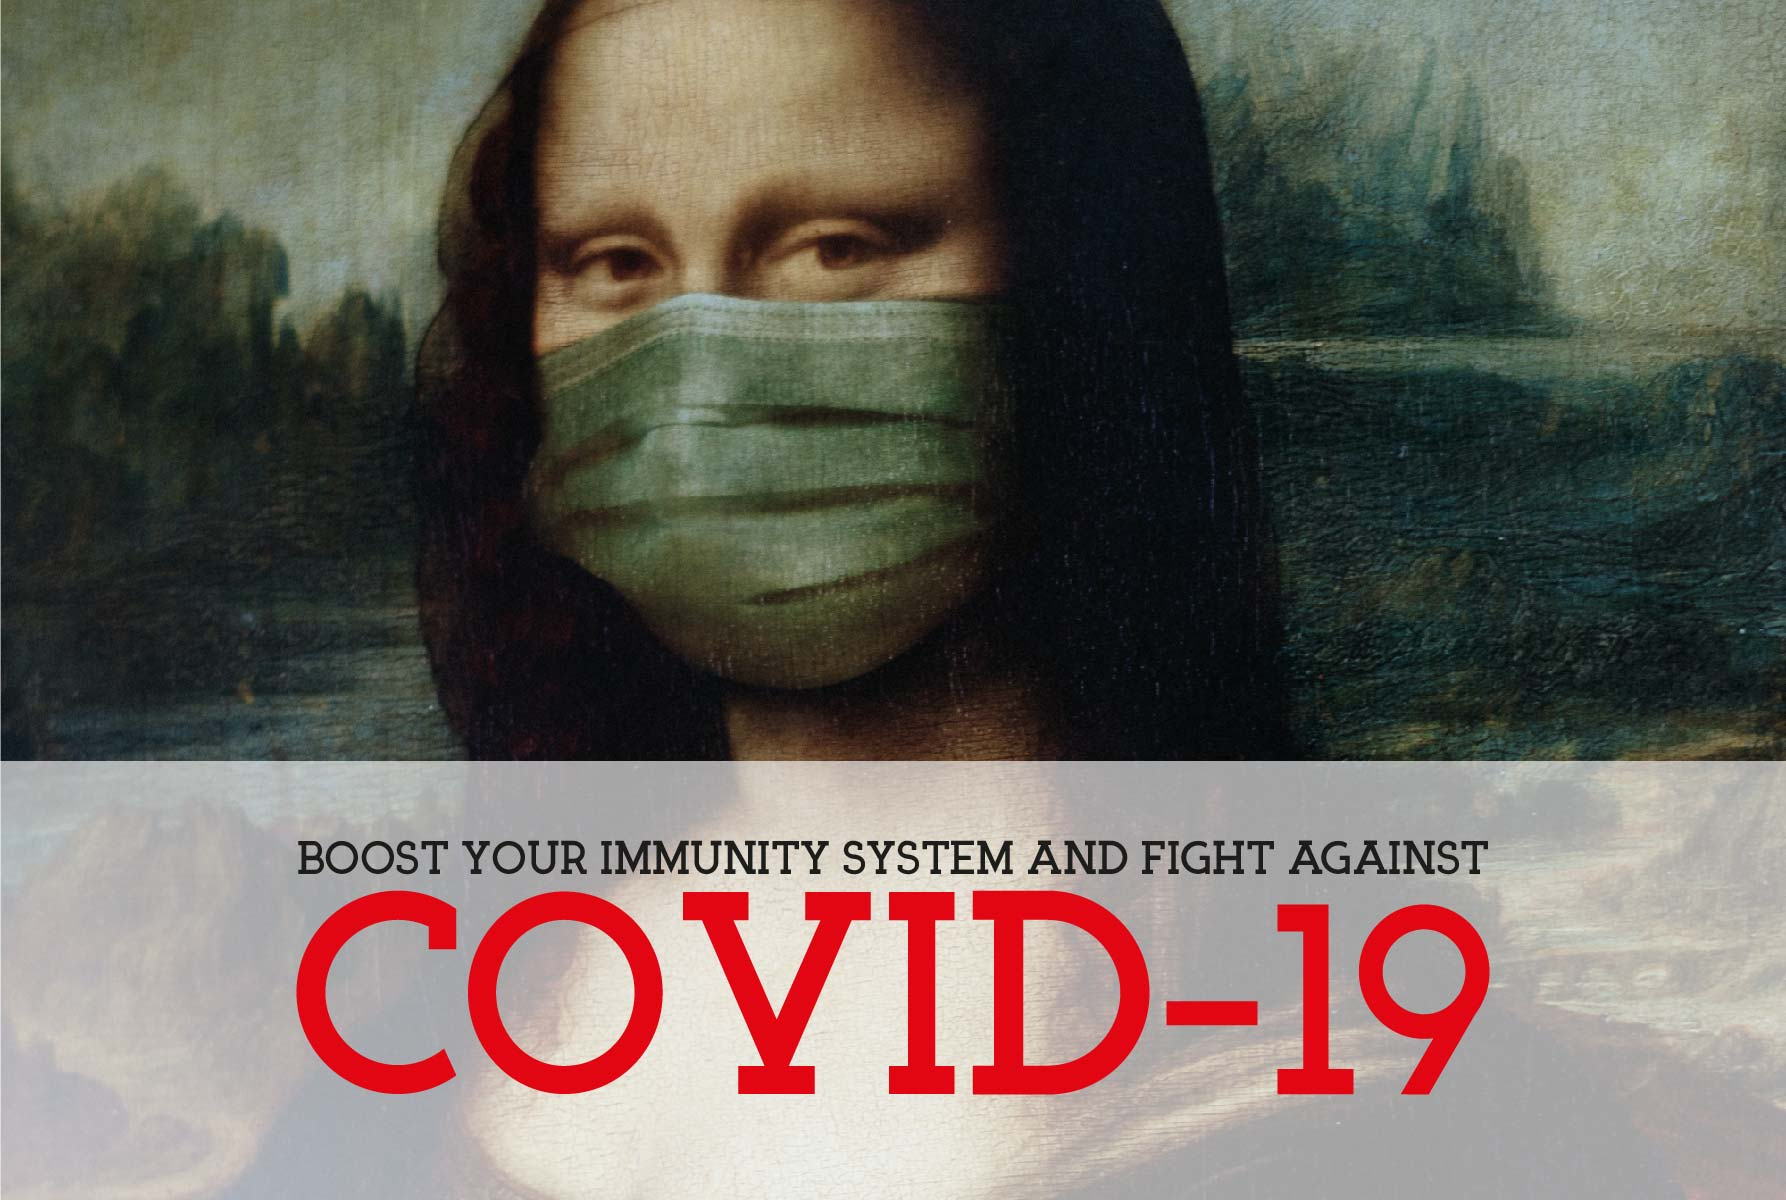 Boost your immunity system and fight against Covid!